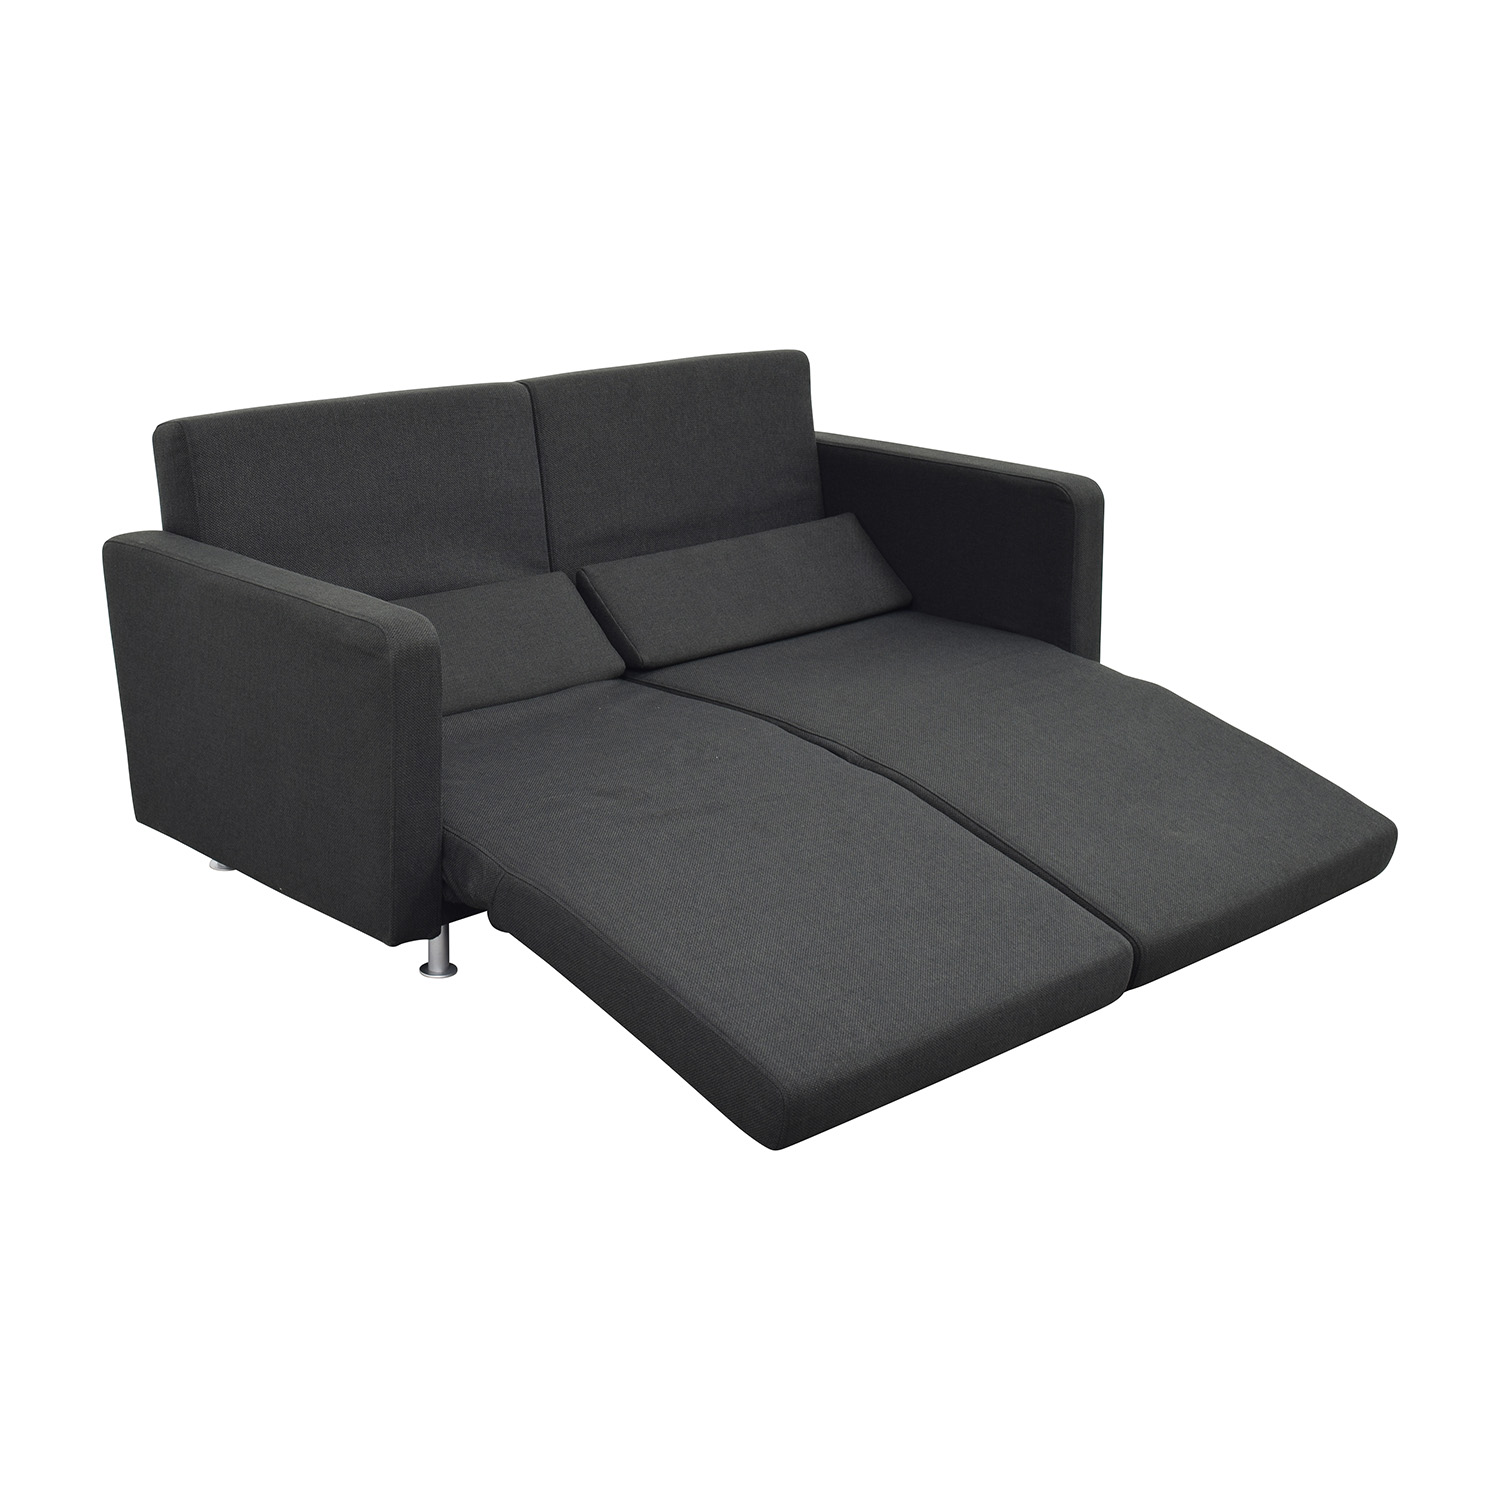 boconcept sleeper sofa review furhaven quilted pet throw melo home co